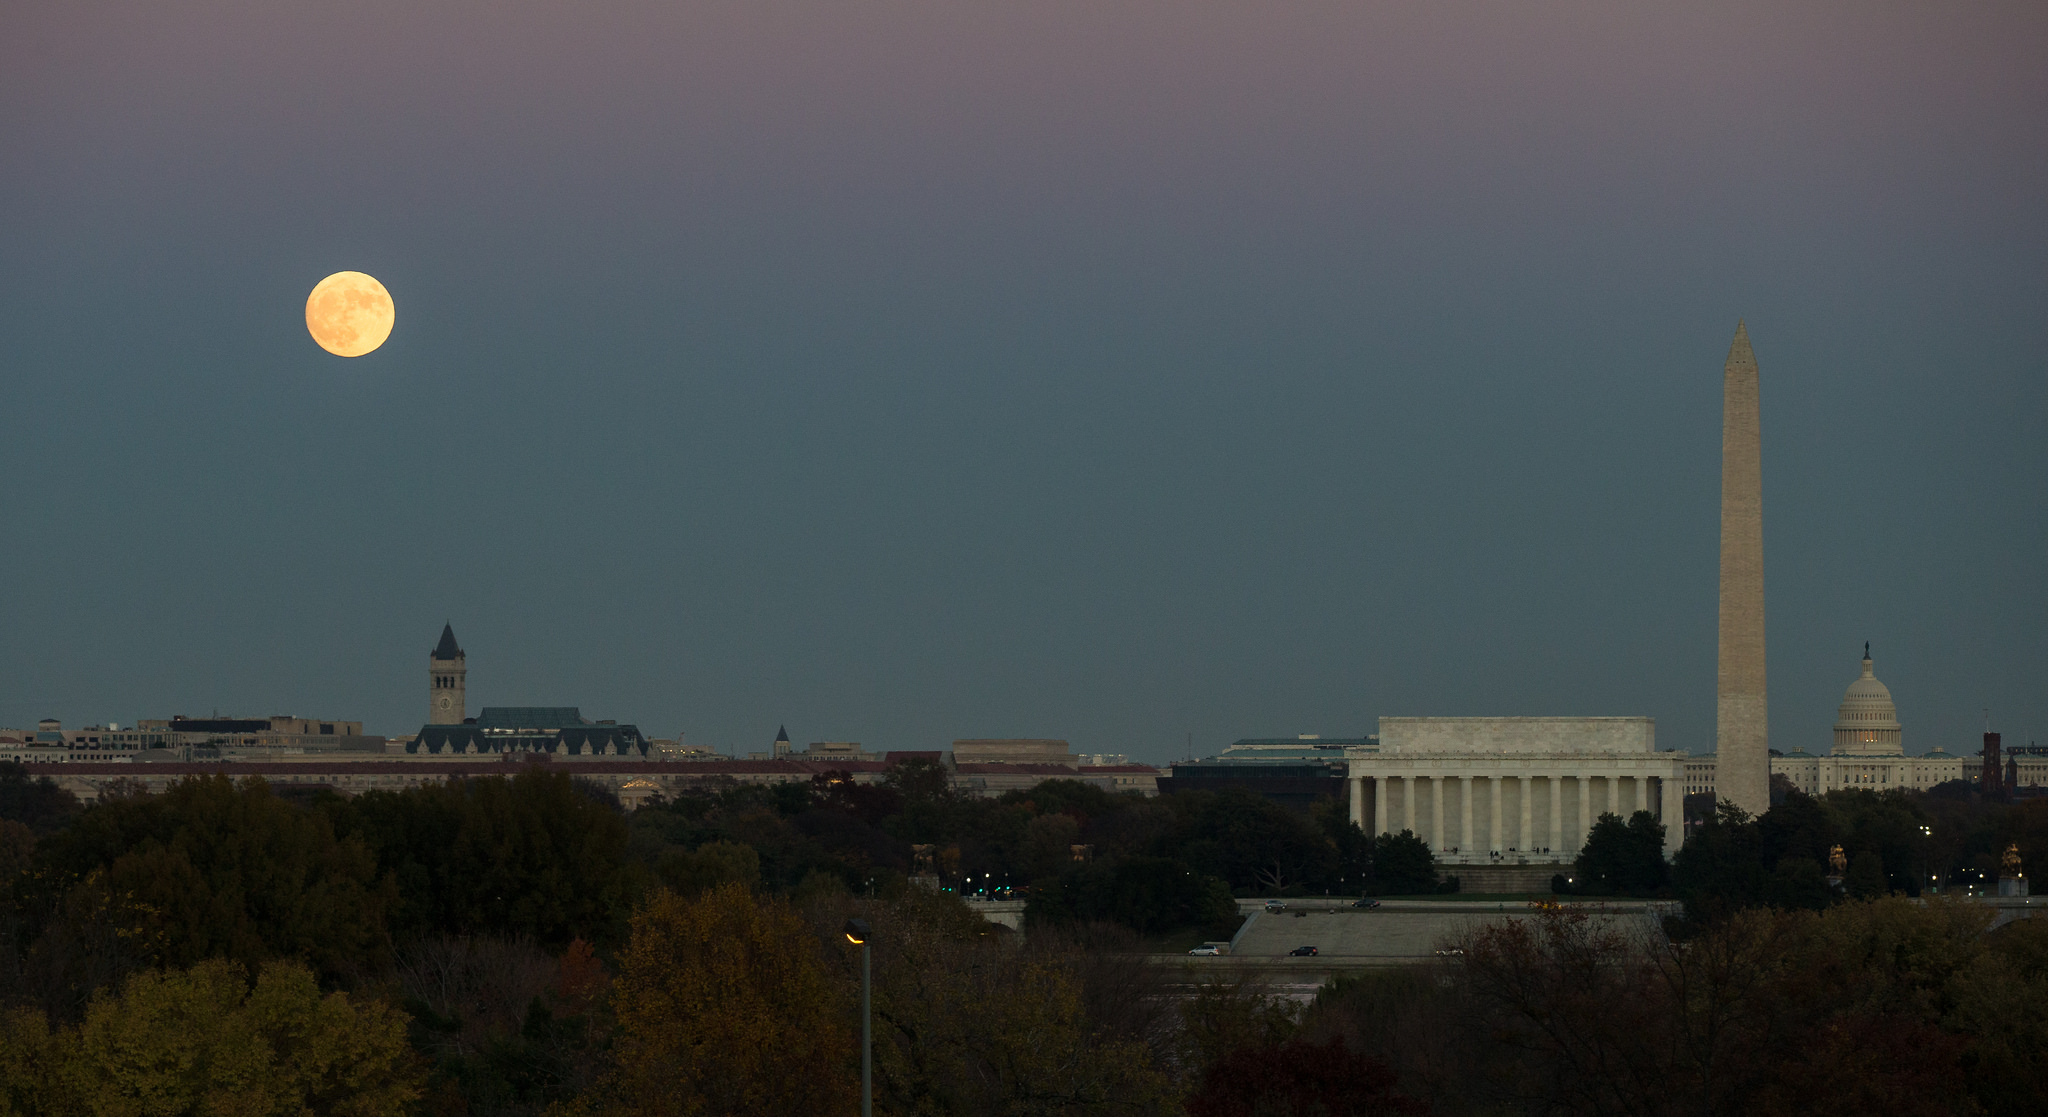 'Supermoon' Photos: The Closest Full Moon Until 2034 in ...